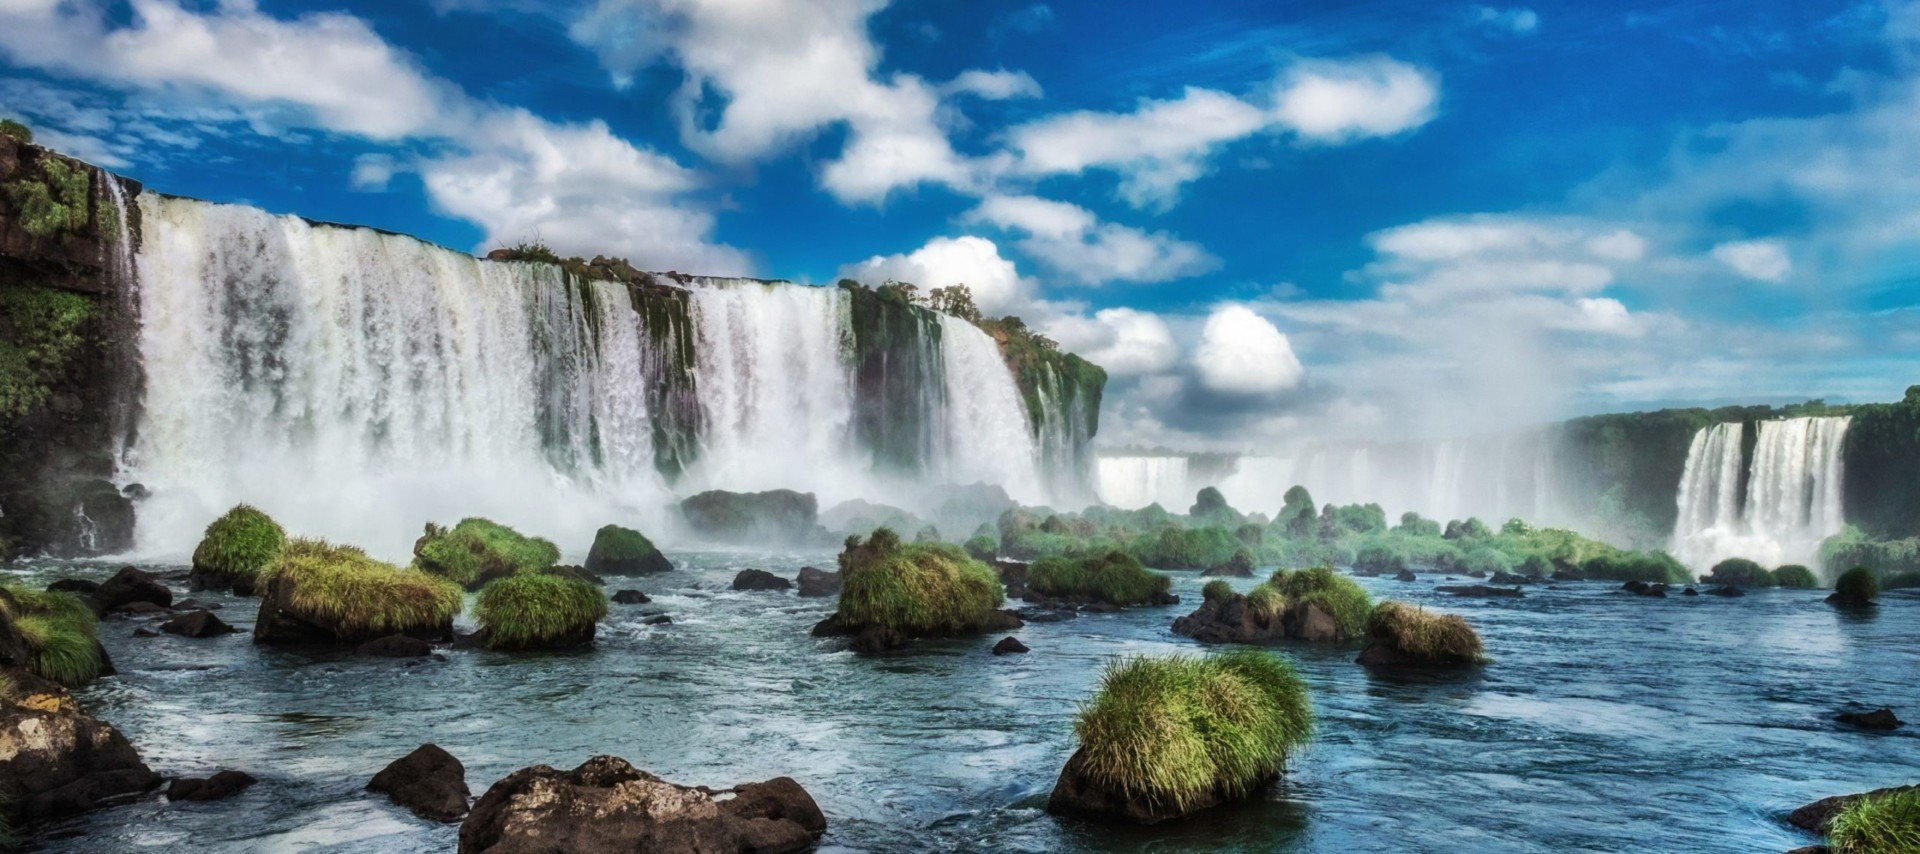 South America Tours, experience waterfalls like this and more.